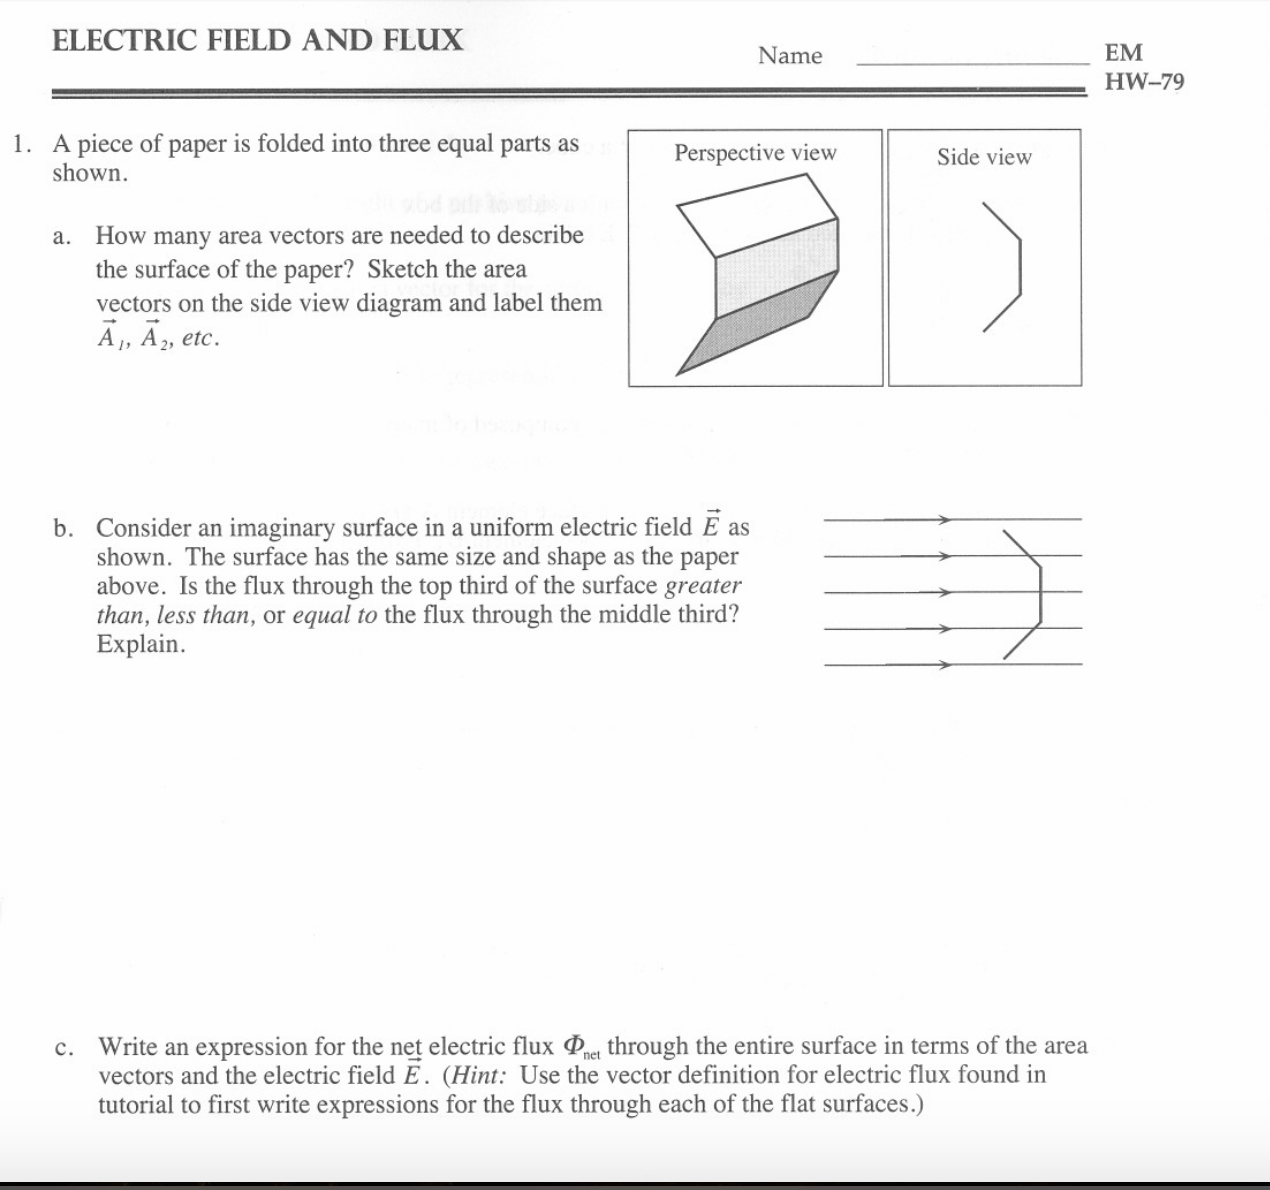 Write an expression for the net electric flux